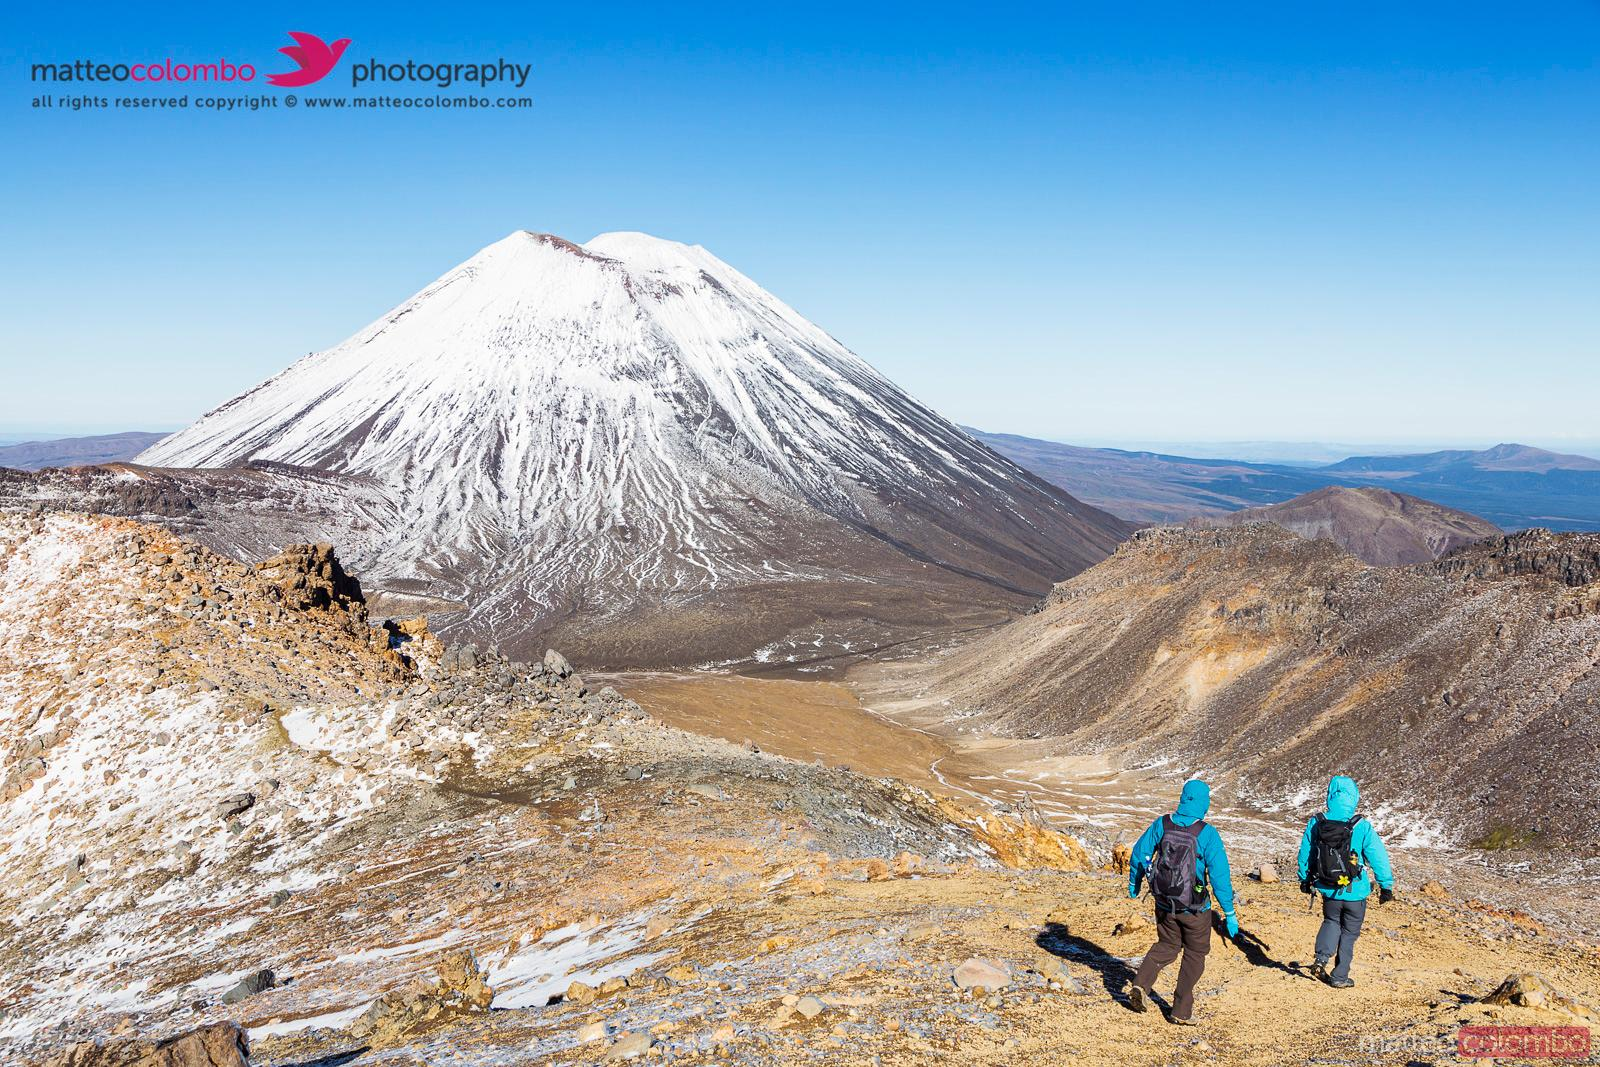 Two women hiking in front of Ngauruhoe volcano, New Zealand